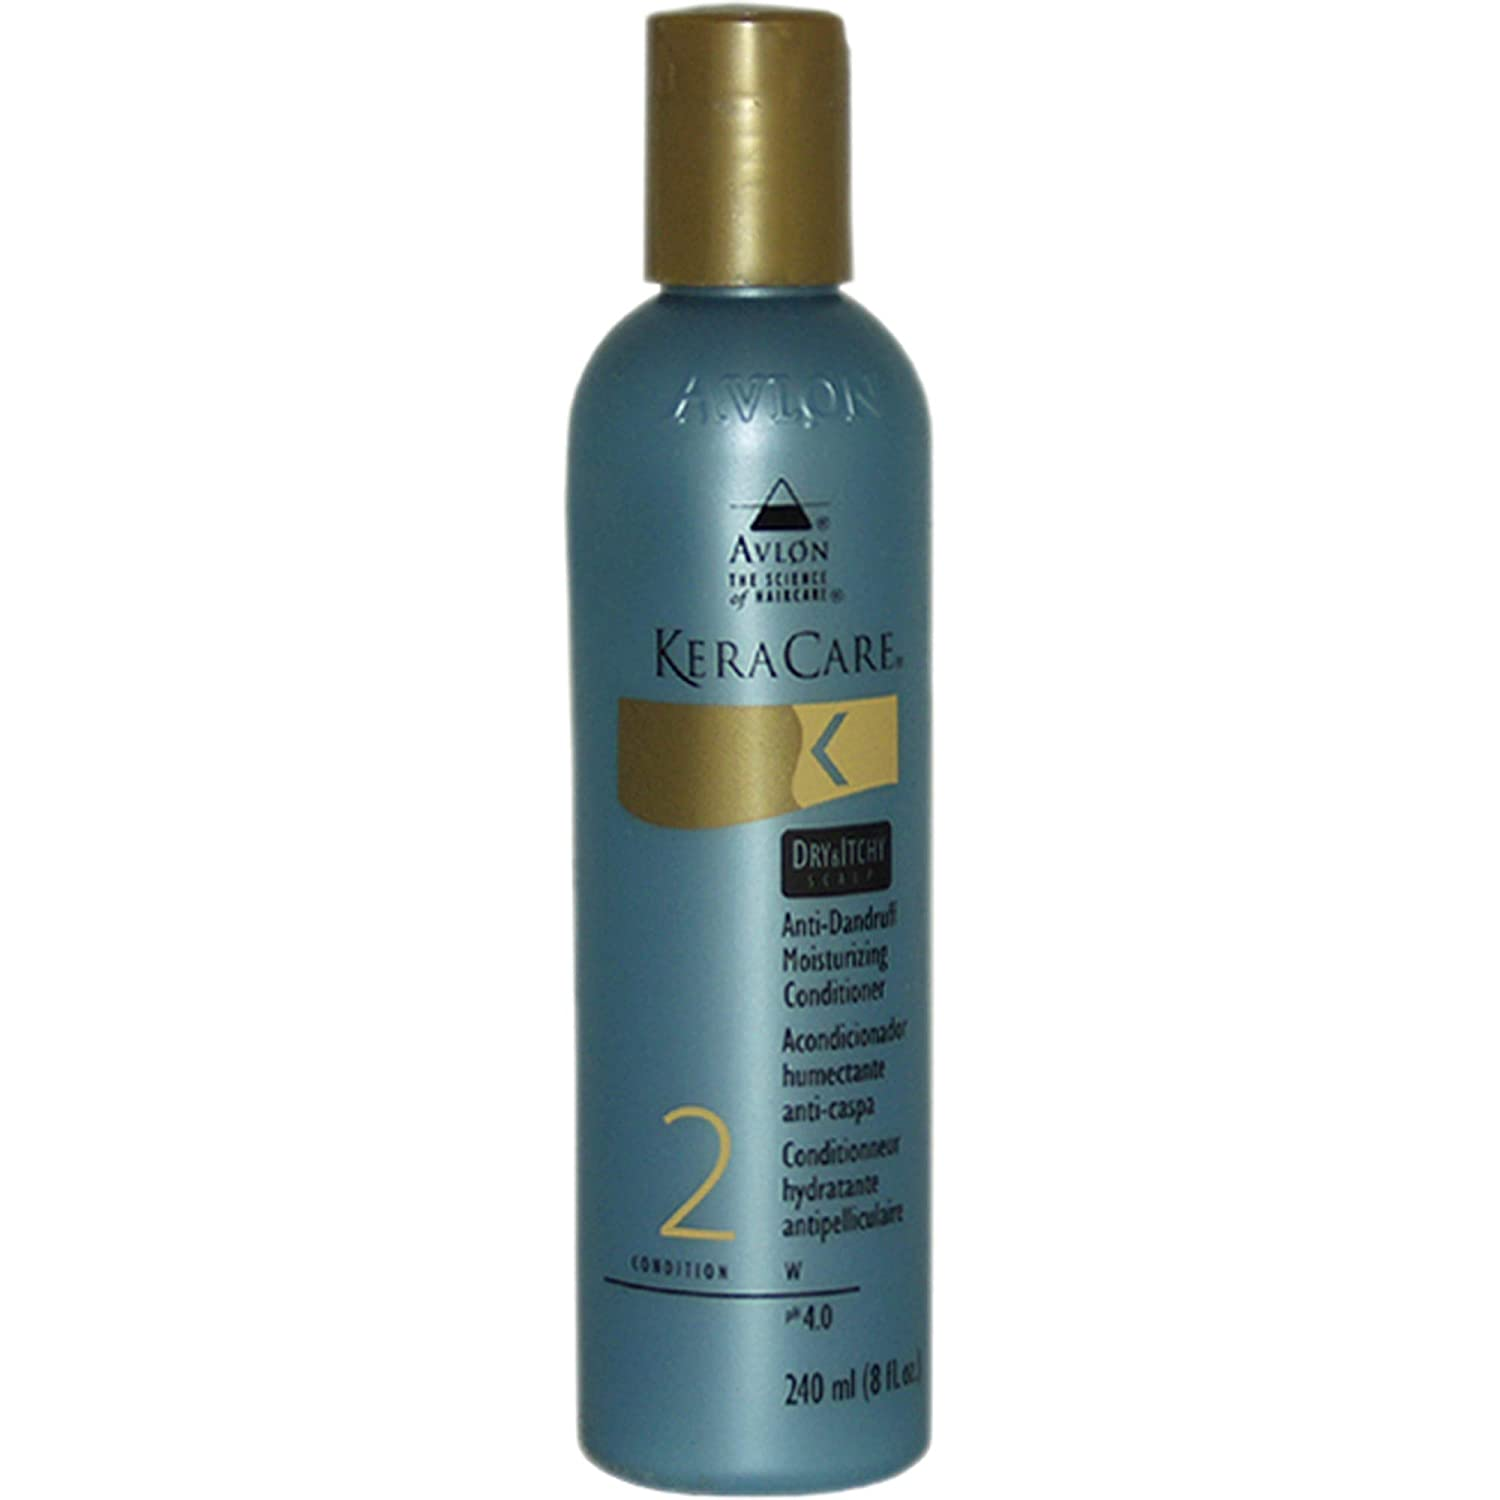 KeraCare Dry & Itchy Scalp Anti-Dandruff Moisturizing Conditioner